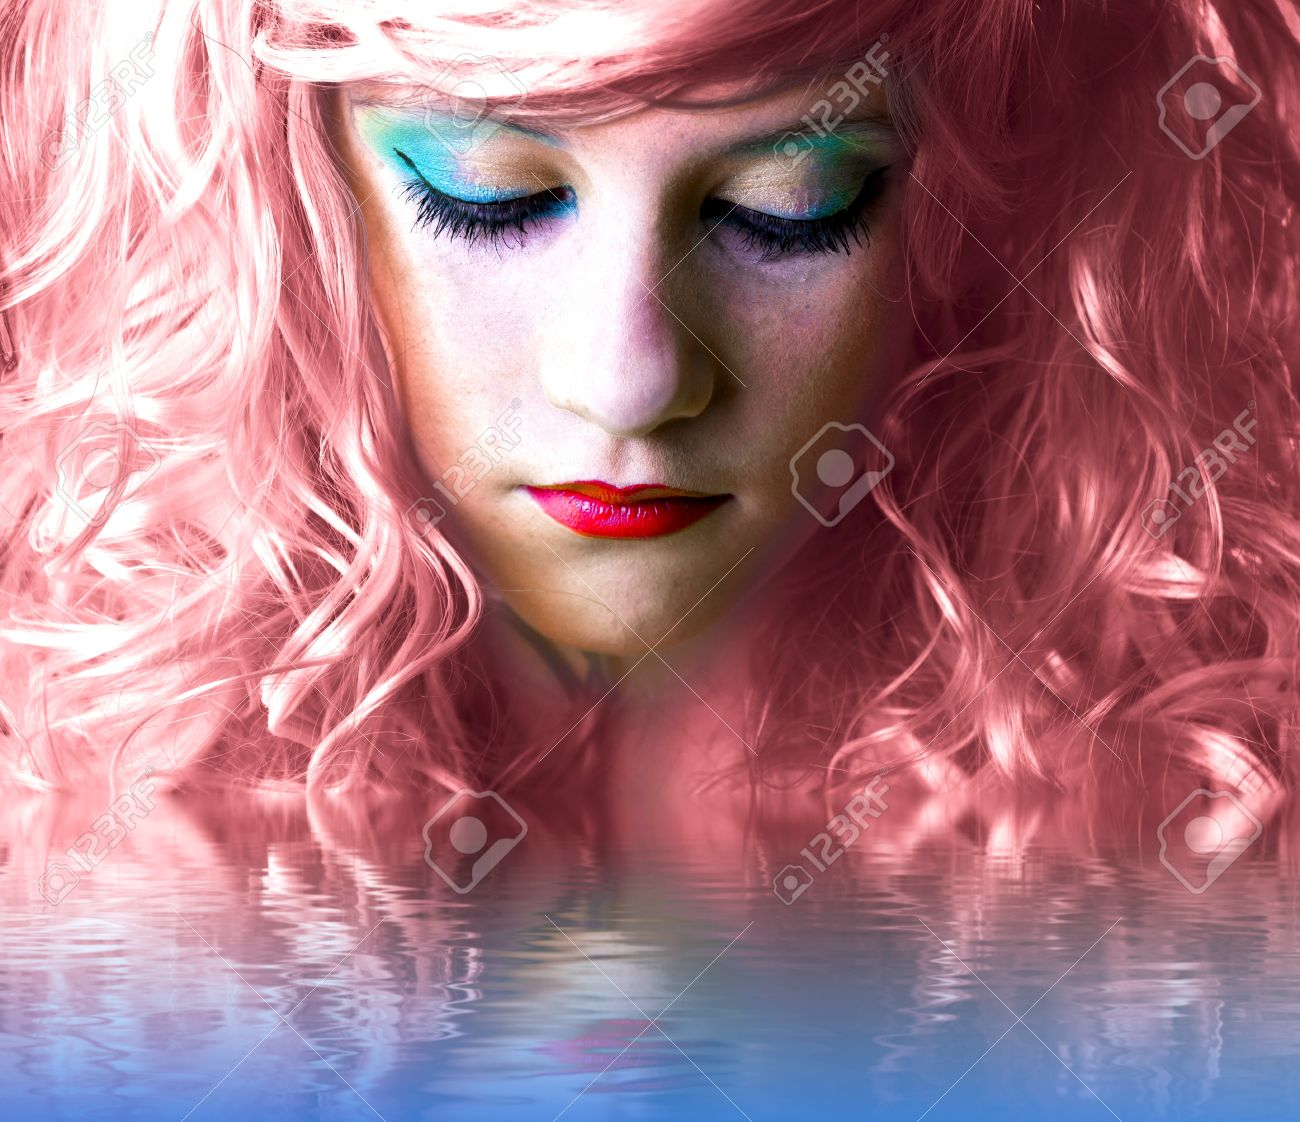 pink haired fairy girl in water reflection Stock Photo - 13344525